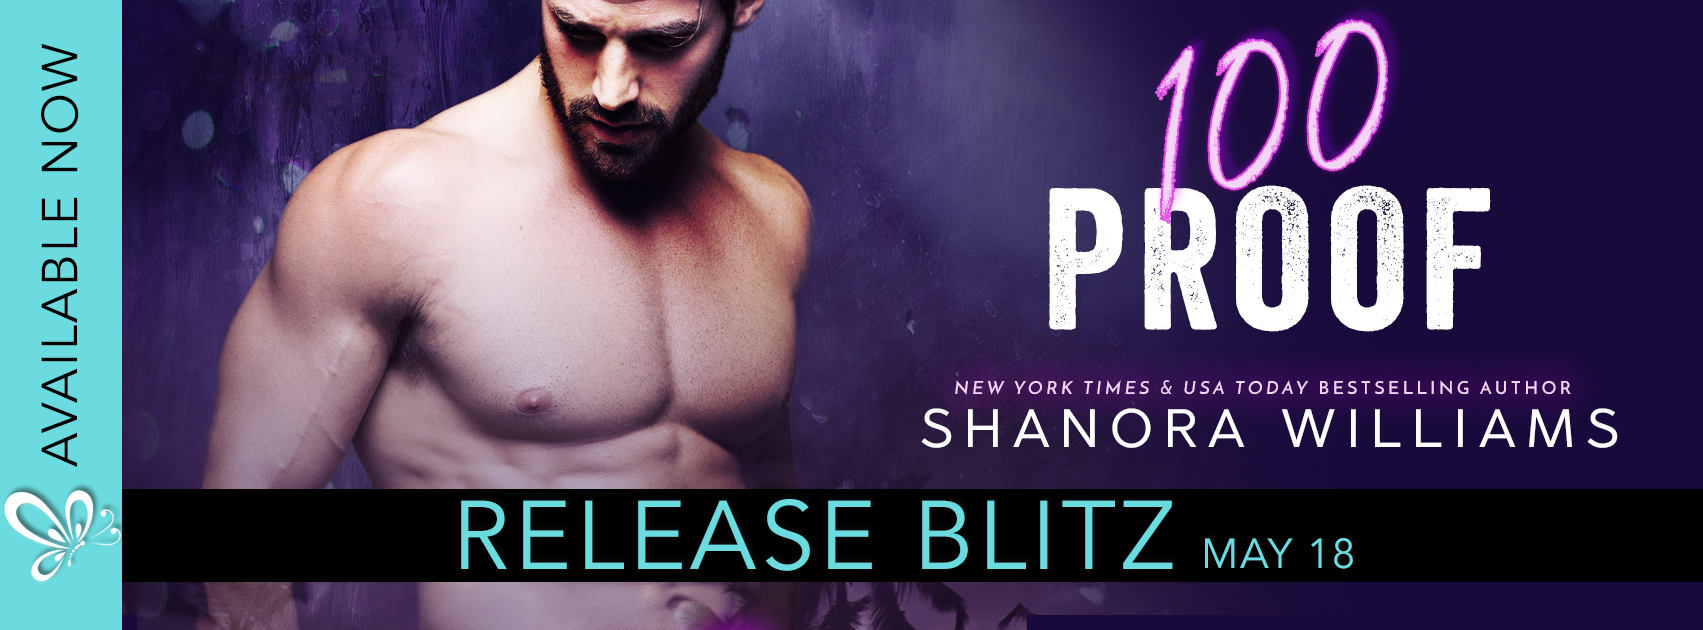 Release Blitz: 100 Proof by Shanora Williams